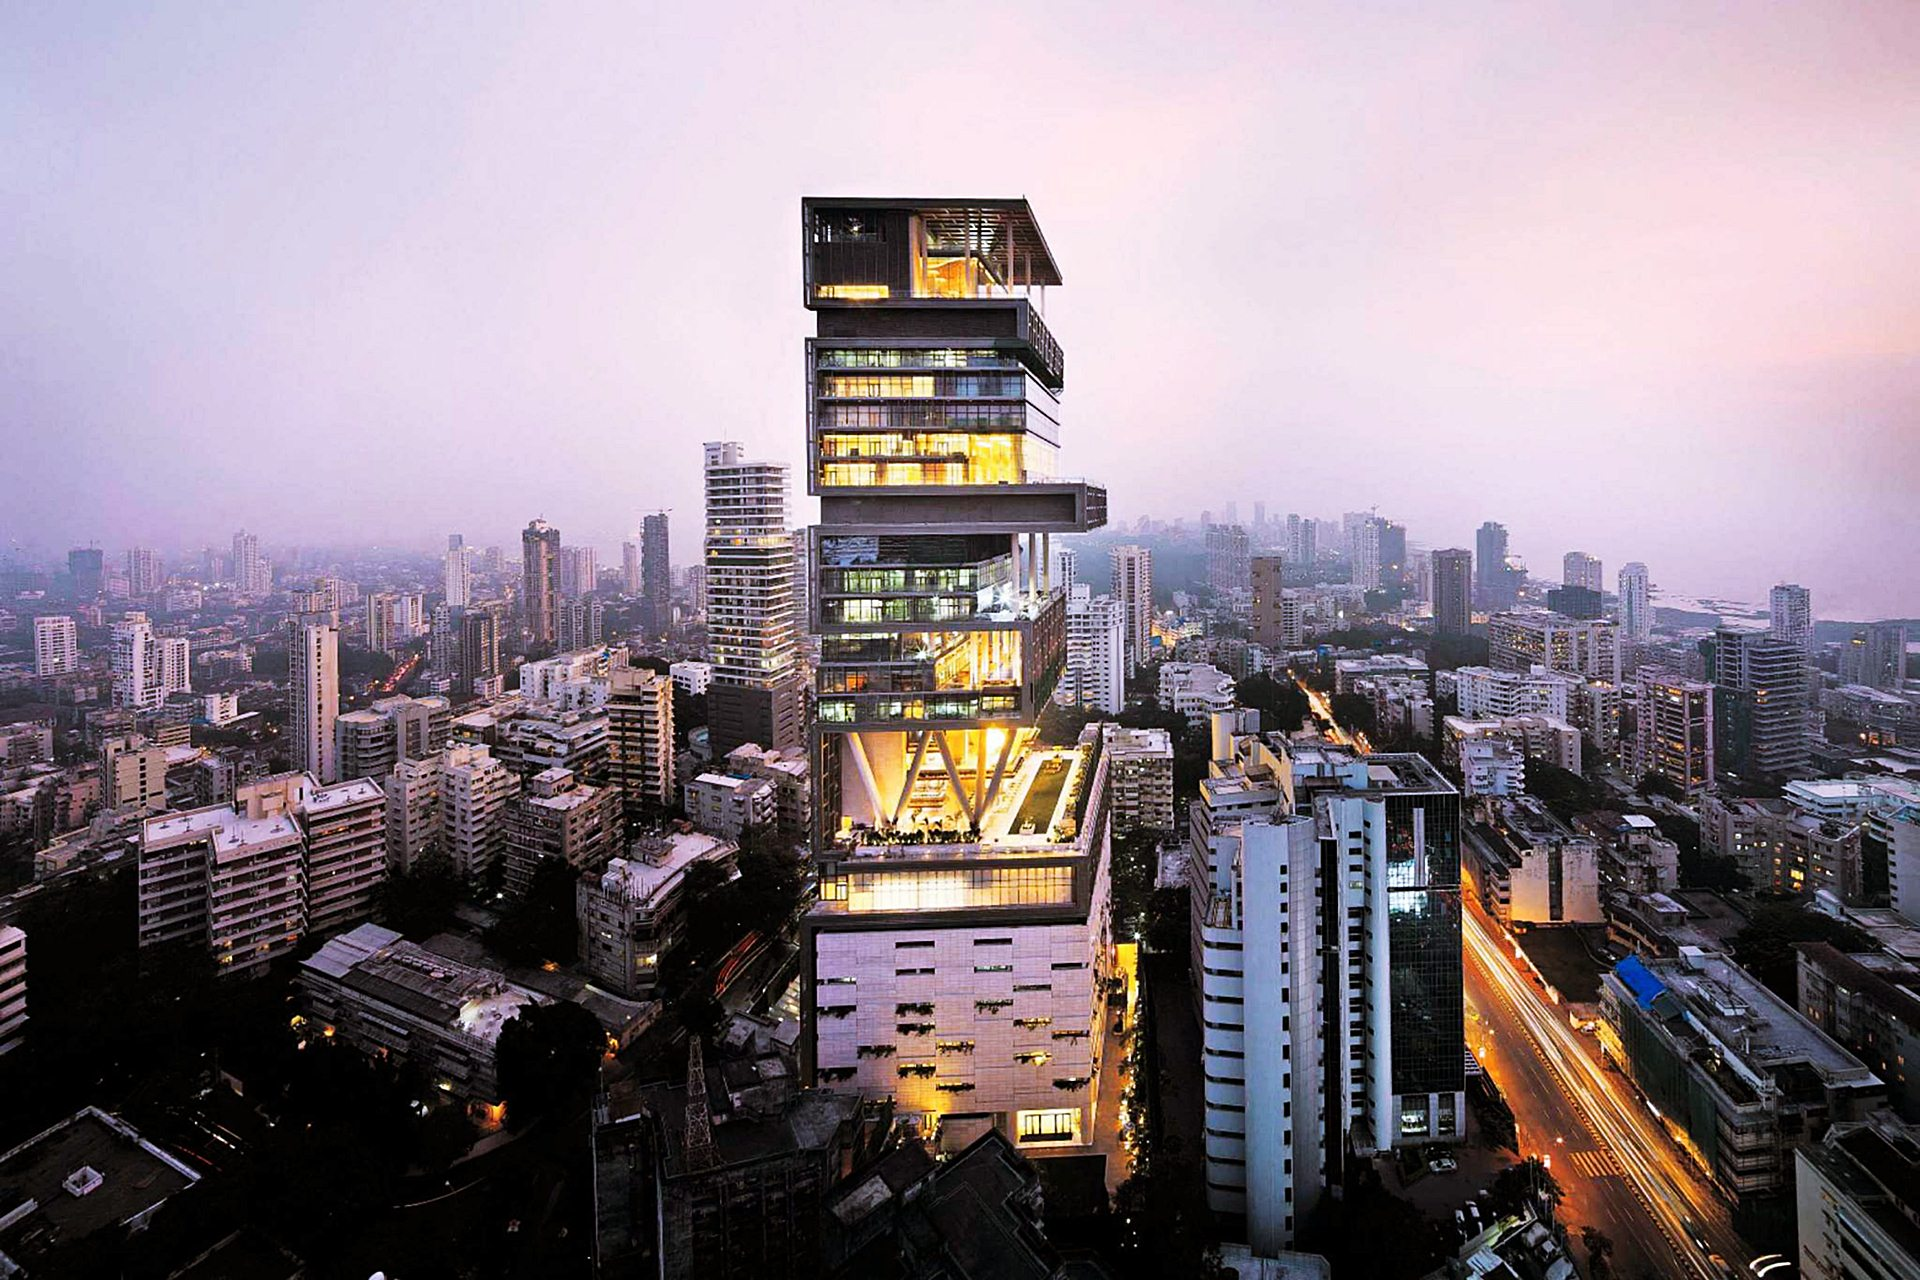 Antilia (Building) Night View - Most Expensive House In India Wallpaper